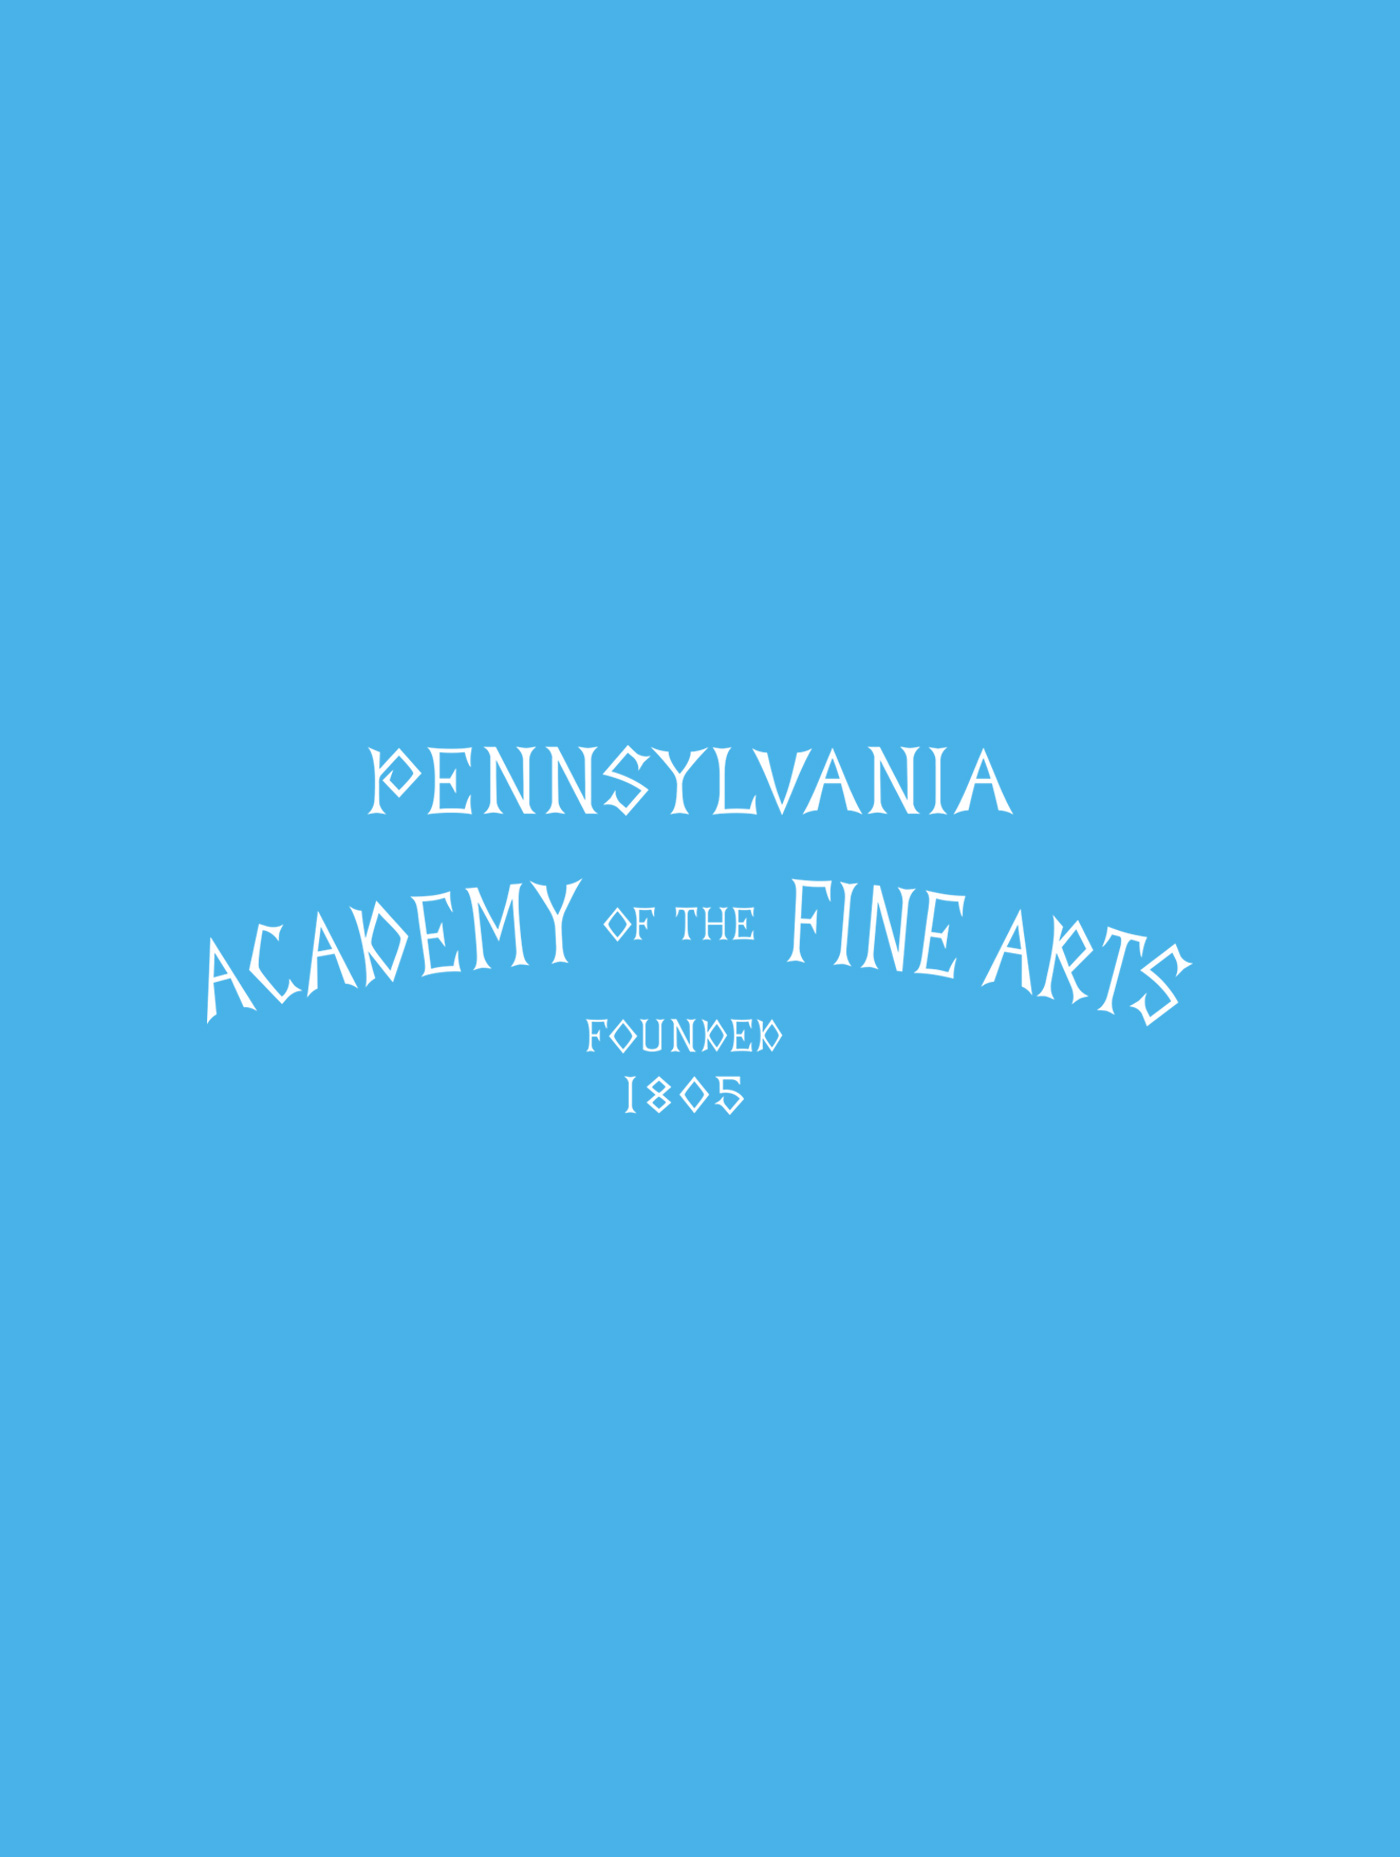 Pennsylvania Academy of the Fine Arts Logo - The Heads of State